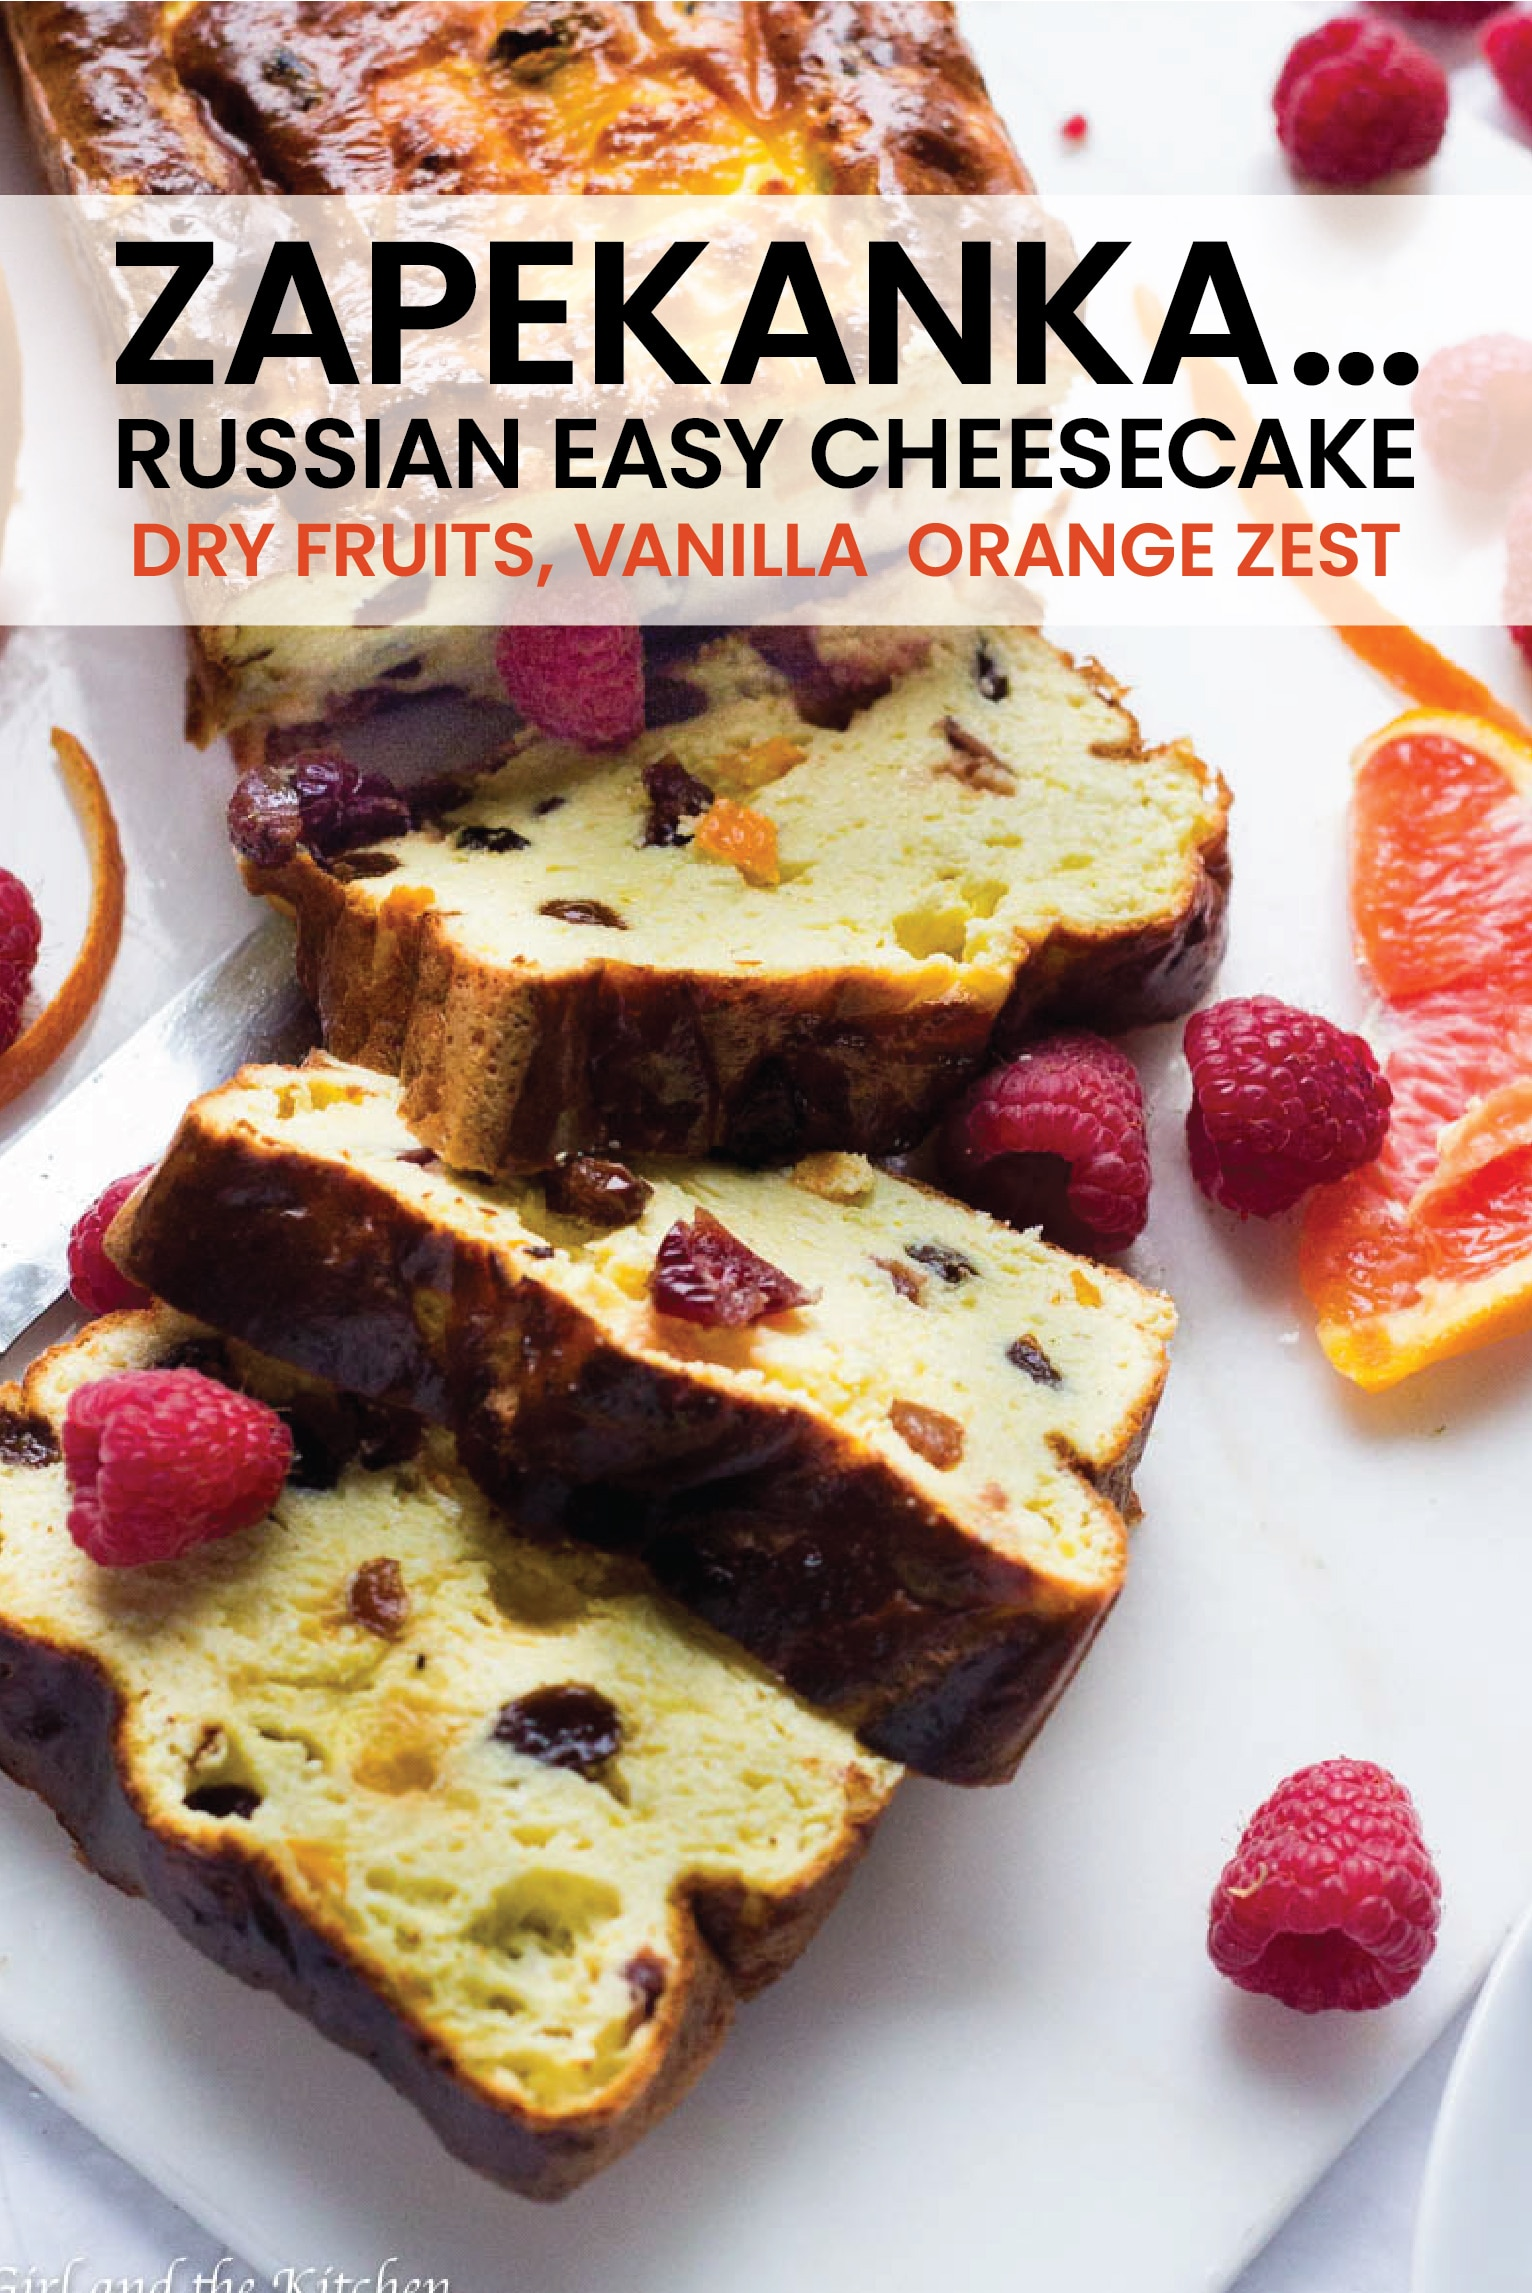 A zapekanka is a super easy cheesecake that comes from Russian roots.  Speckled with dry fruits, plenty of good vanilla and some orange zest, this will be your new go to dessert when you want plenty of flavor without much effort!